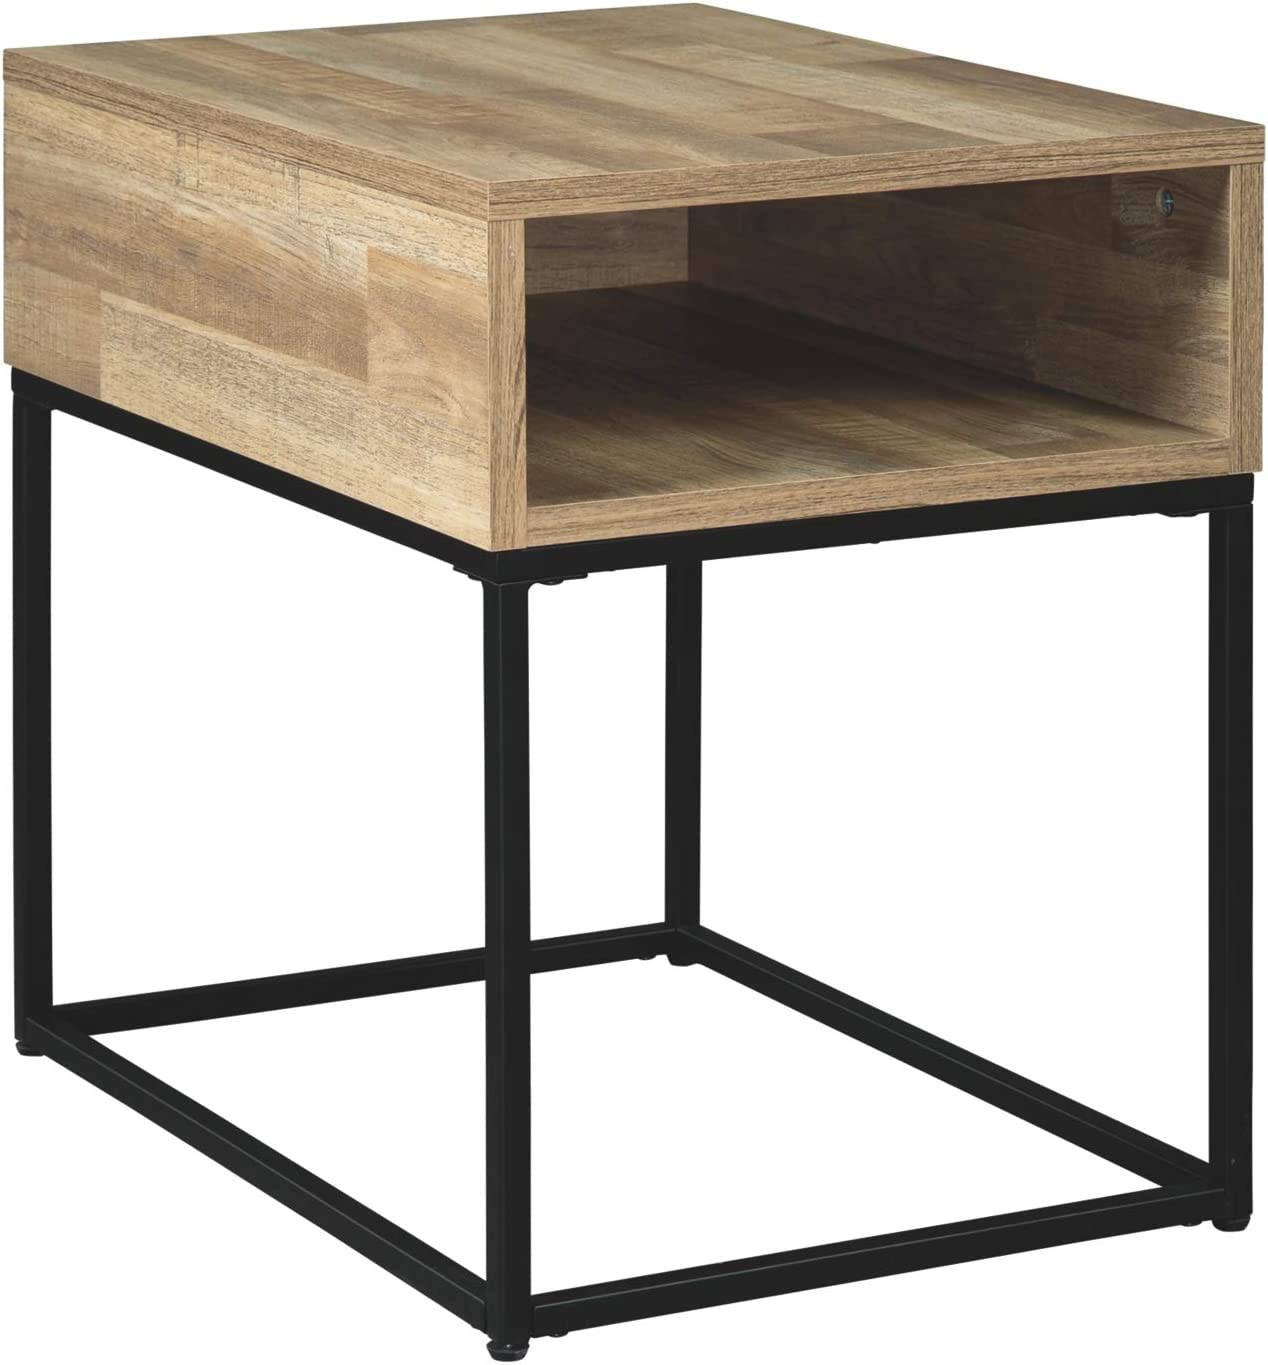 Signature Design by Ashley - Gerdanet Rectangular End Table w/ Storage, Natural Brown Wood